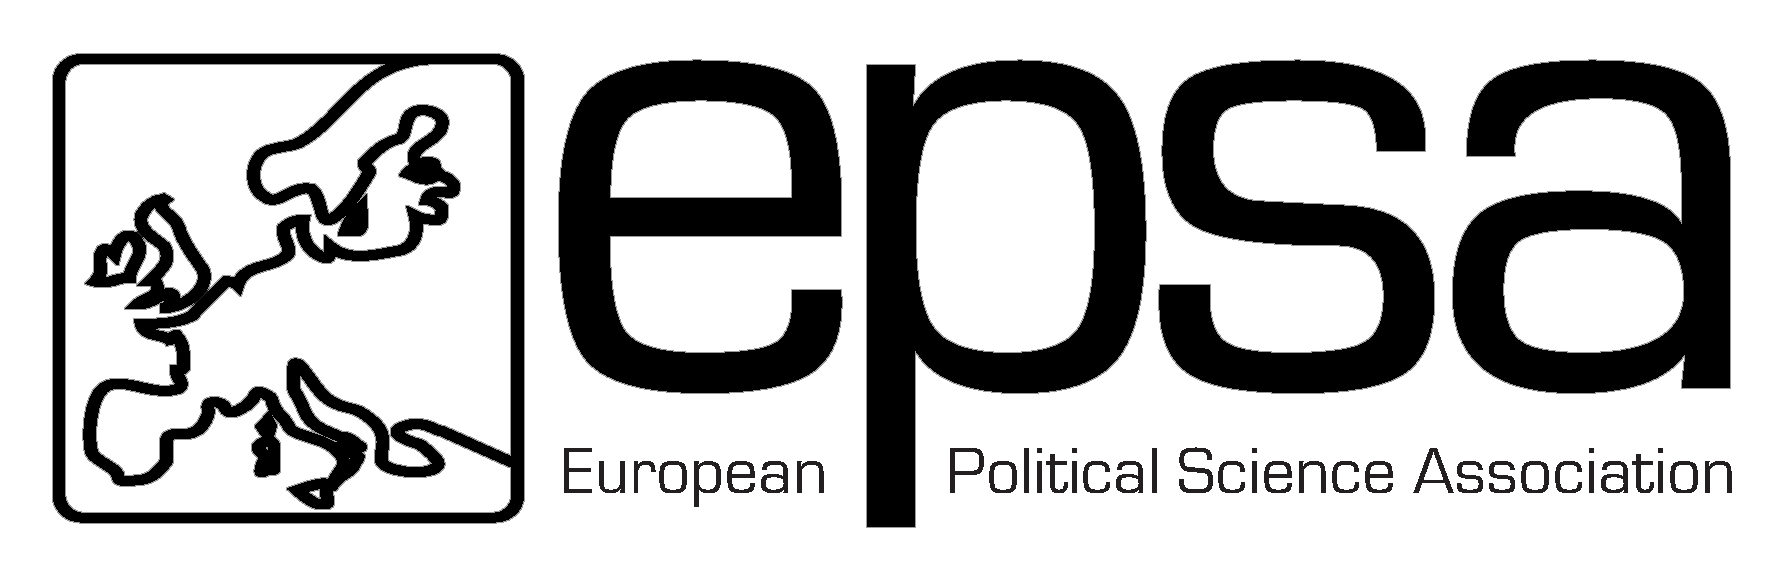 EPSA logo - outline black